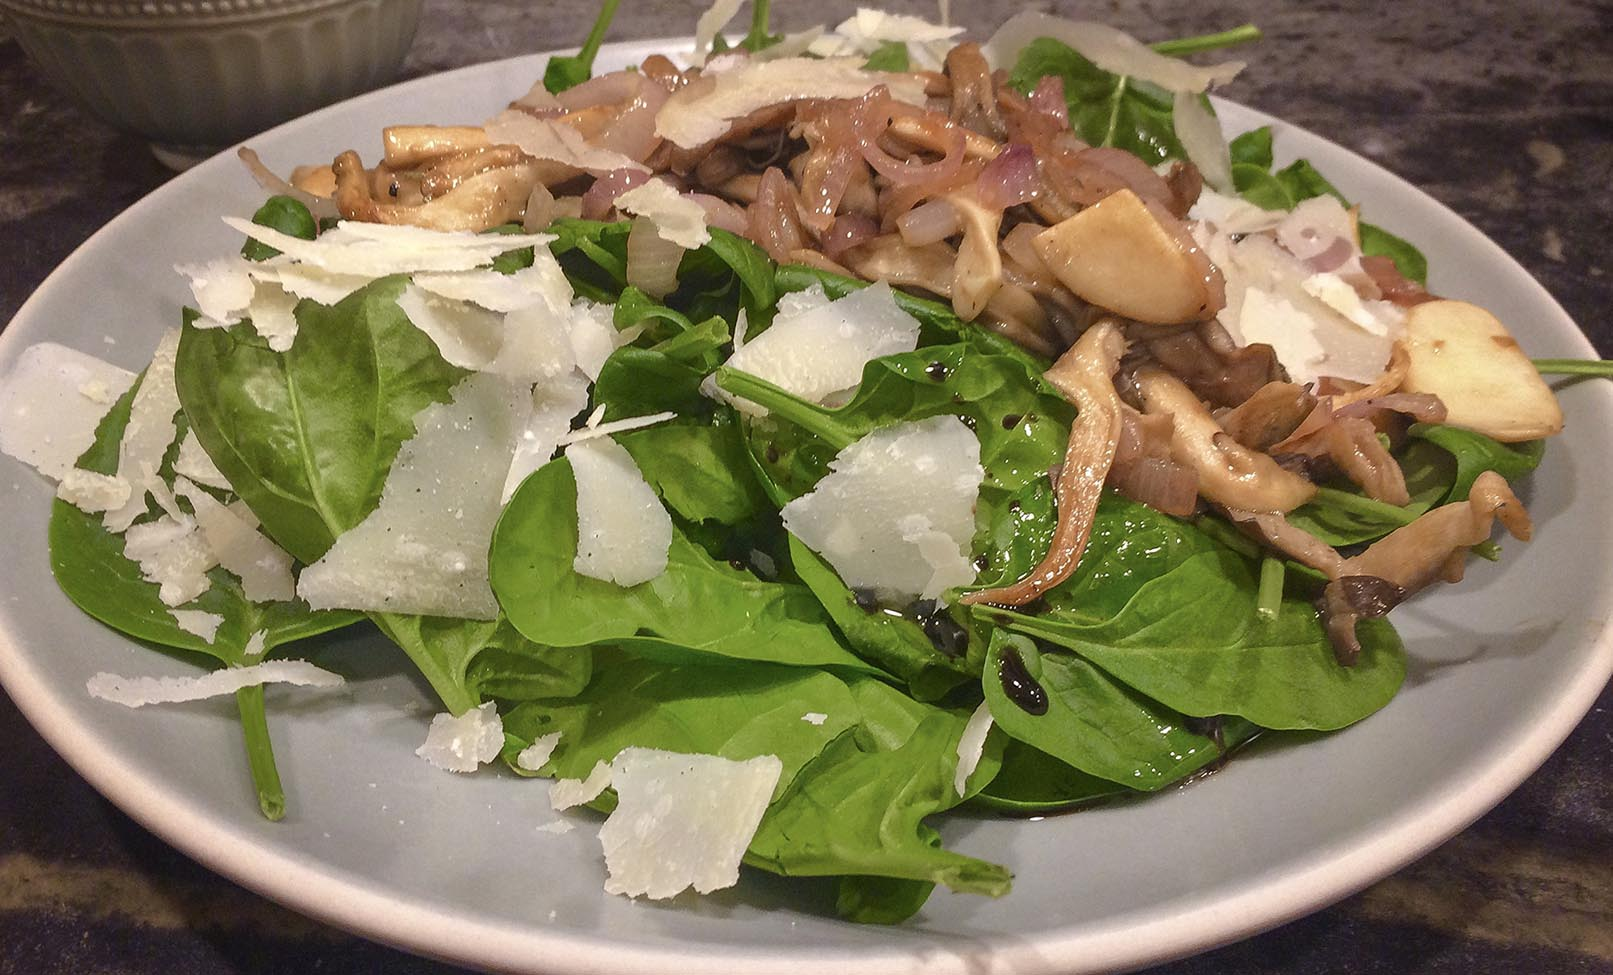 Kathy's sauteed mushrooms over baby spinach with warm garlic vinaigrette and Parmesan shavings. (Kathy Gunst for Here & Now)